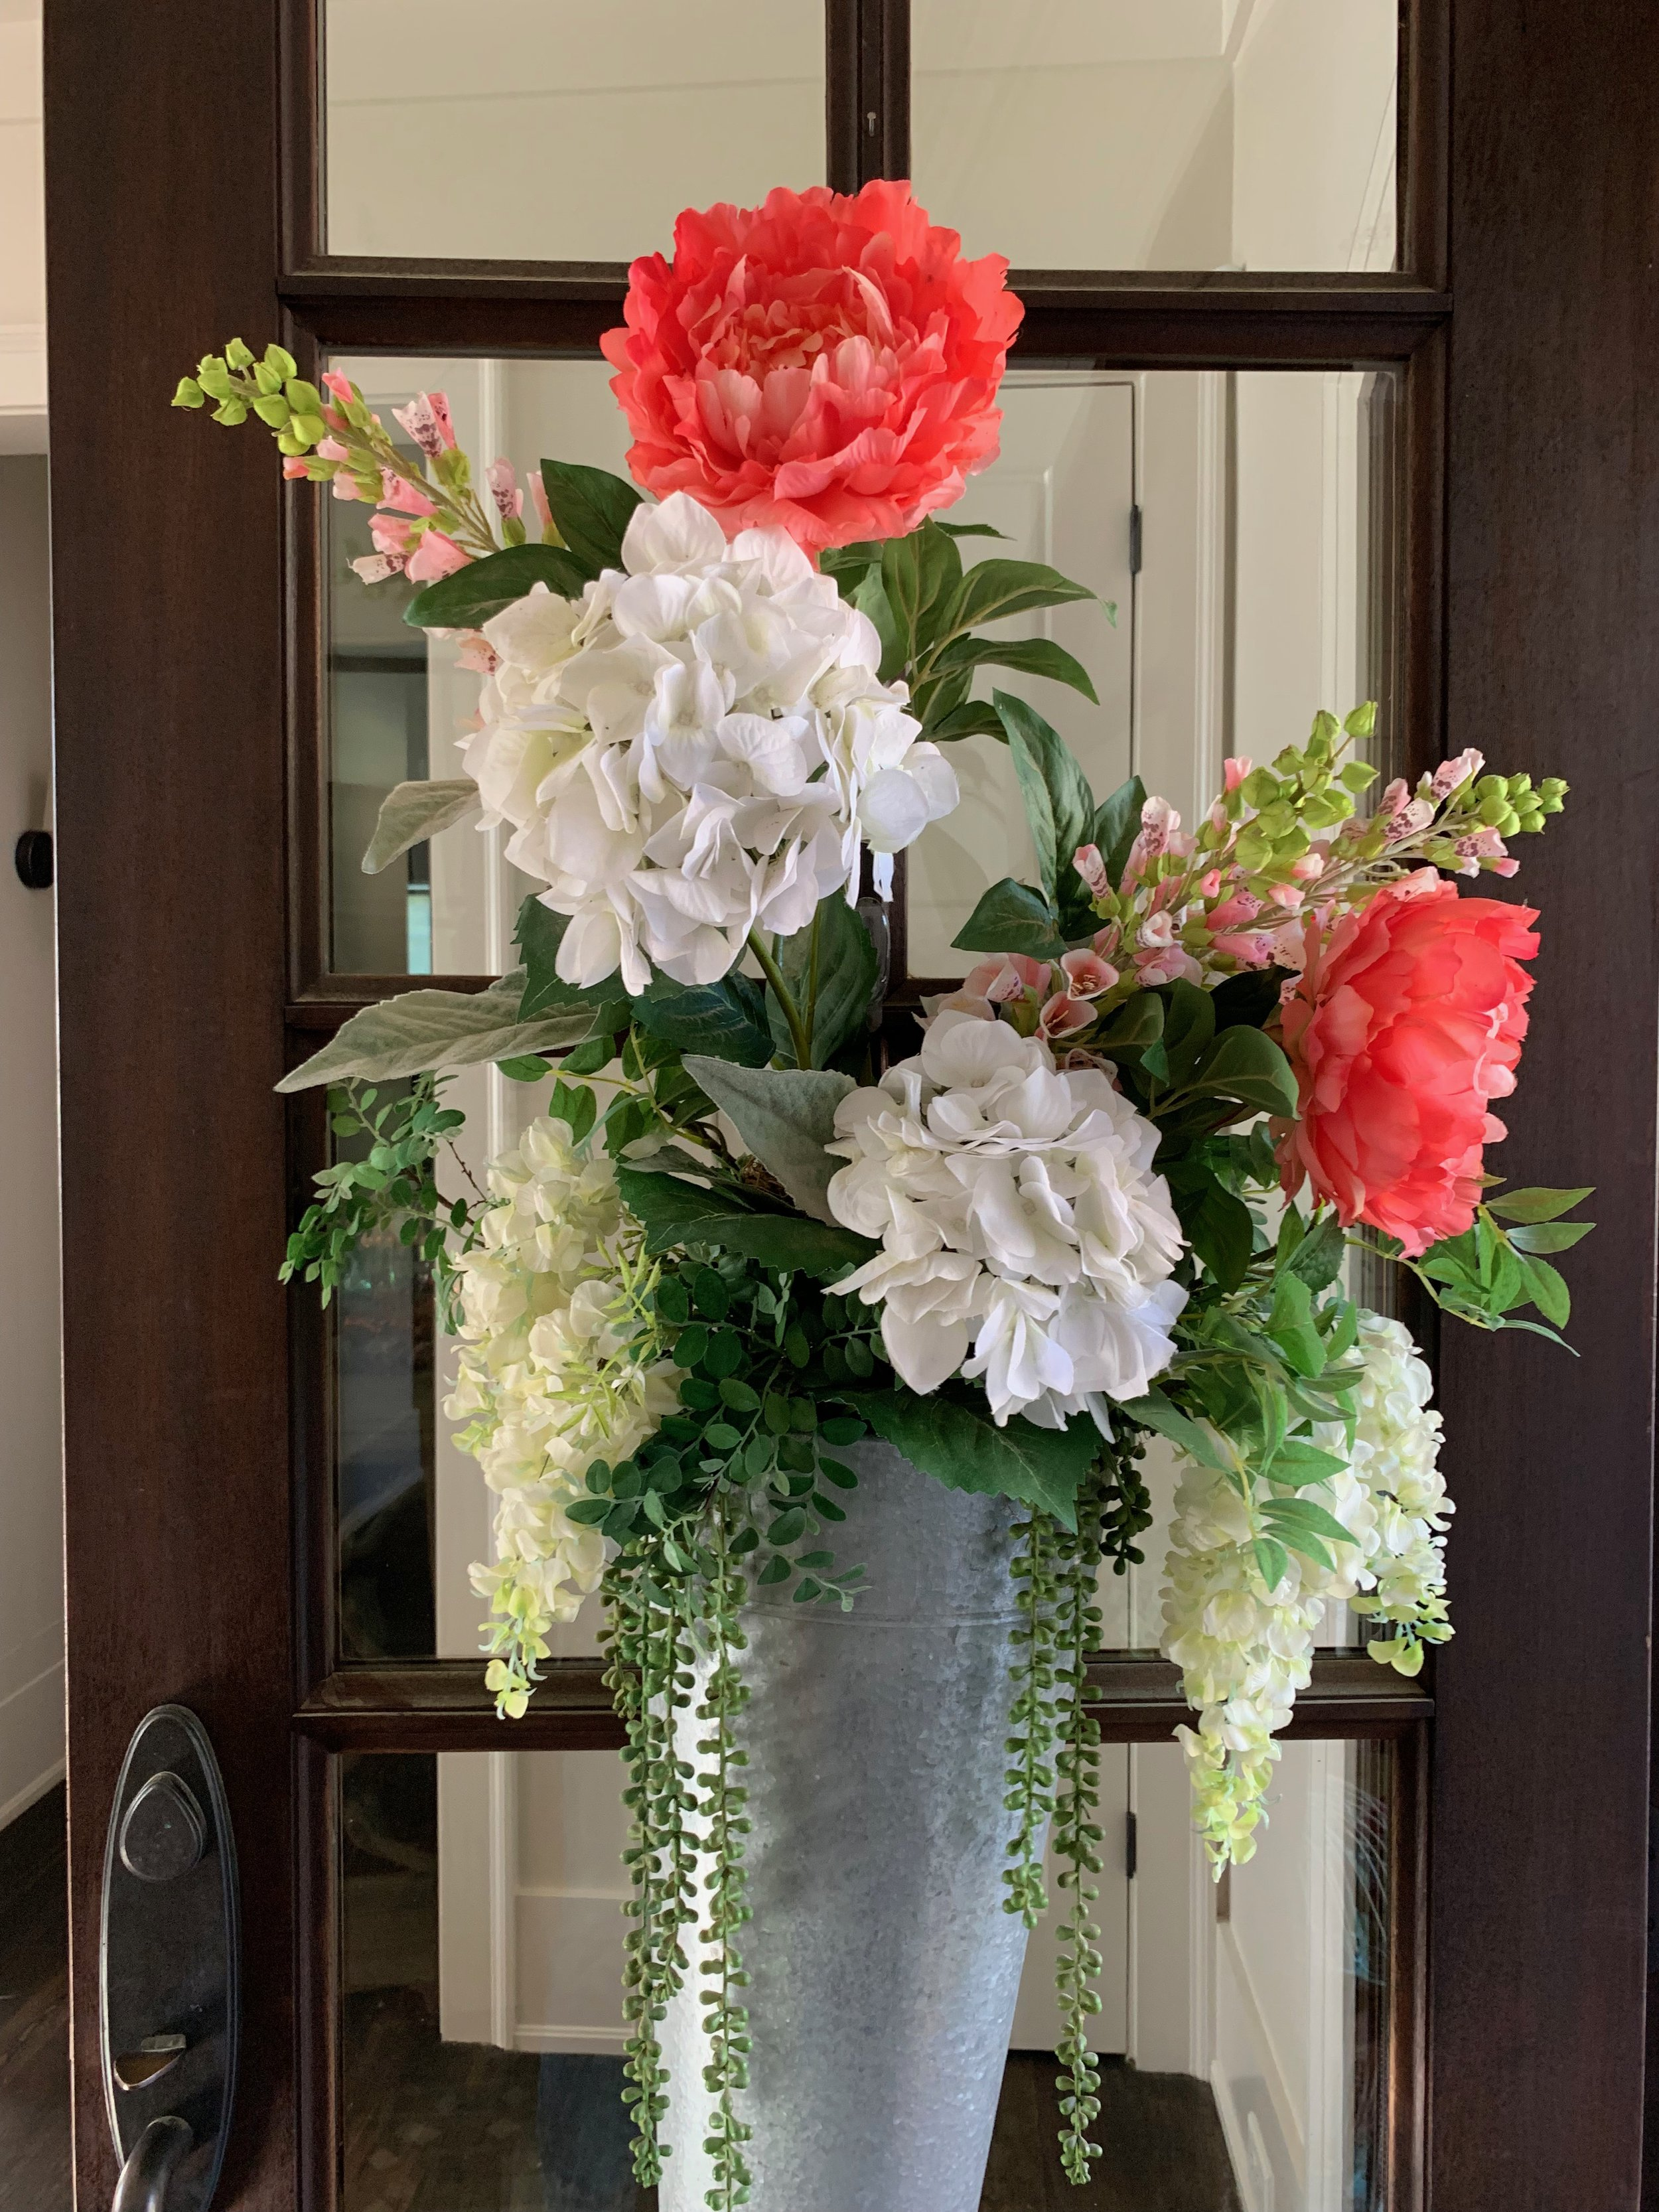 The front door arrangement